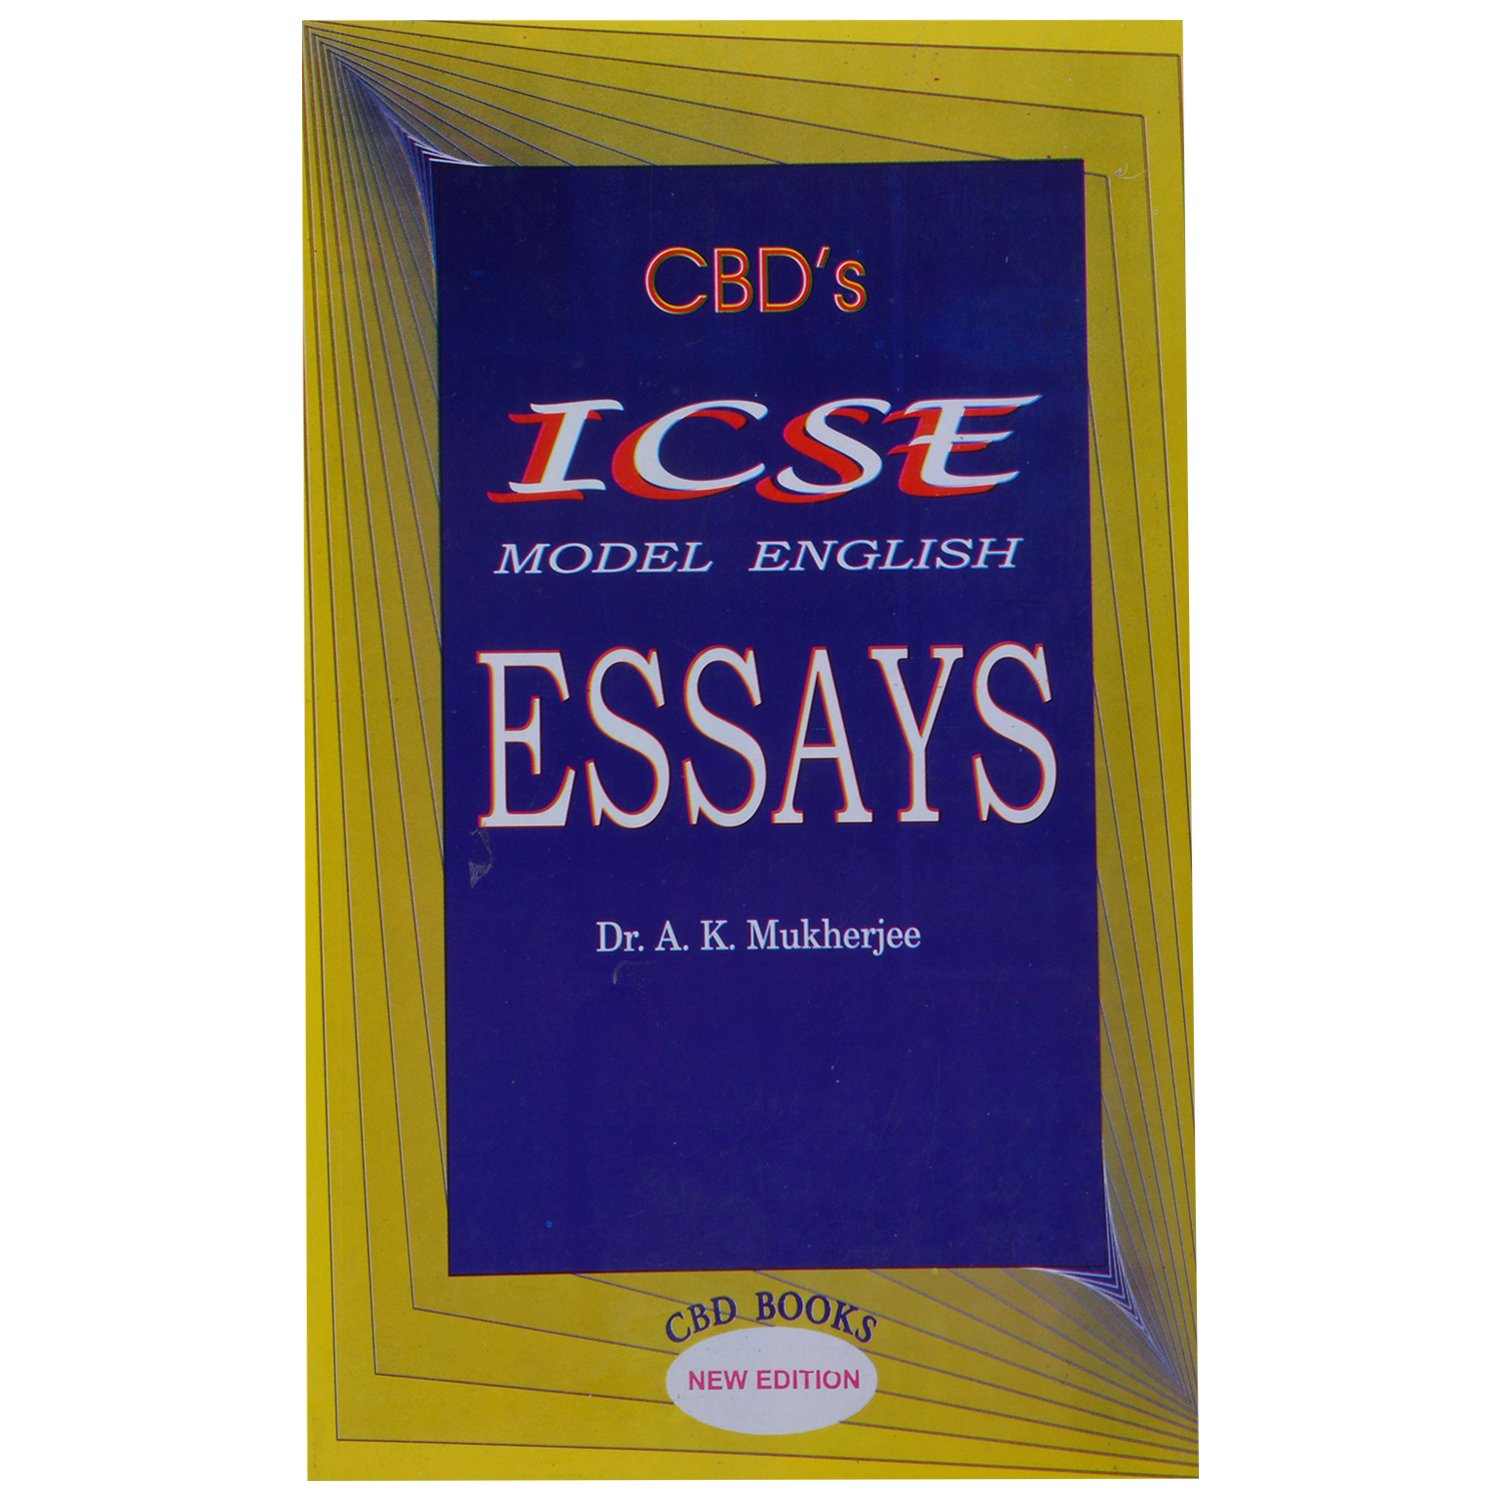 Buy ICSE Model English Essays (CBD0032) Book Online At Low Prices In India  | ICSE Model English Essays (CBD0032) Reviews U0026 Ratings   Amazon.in